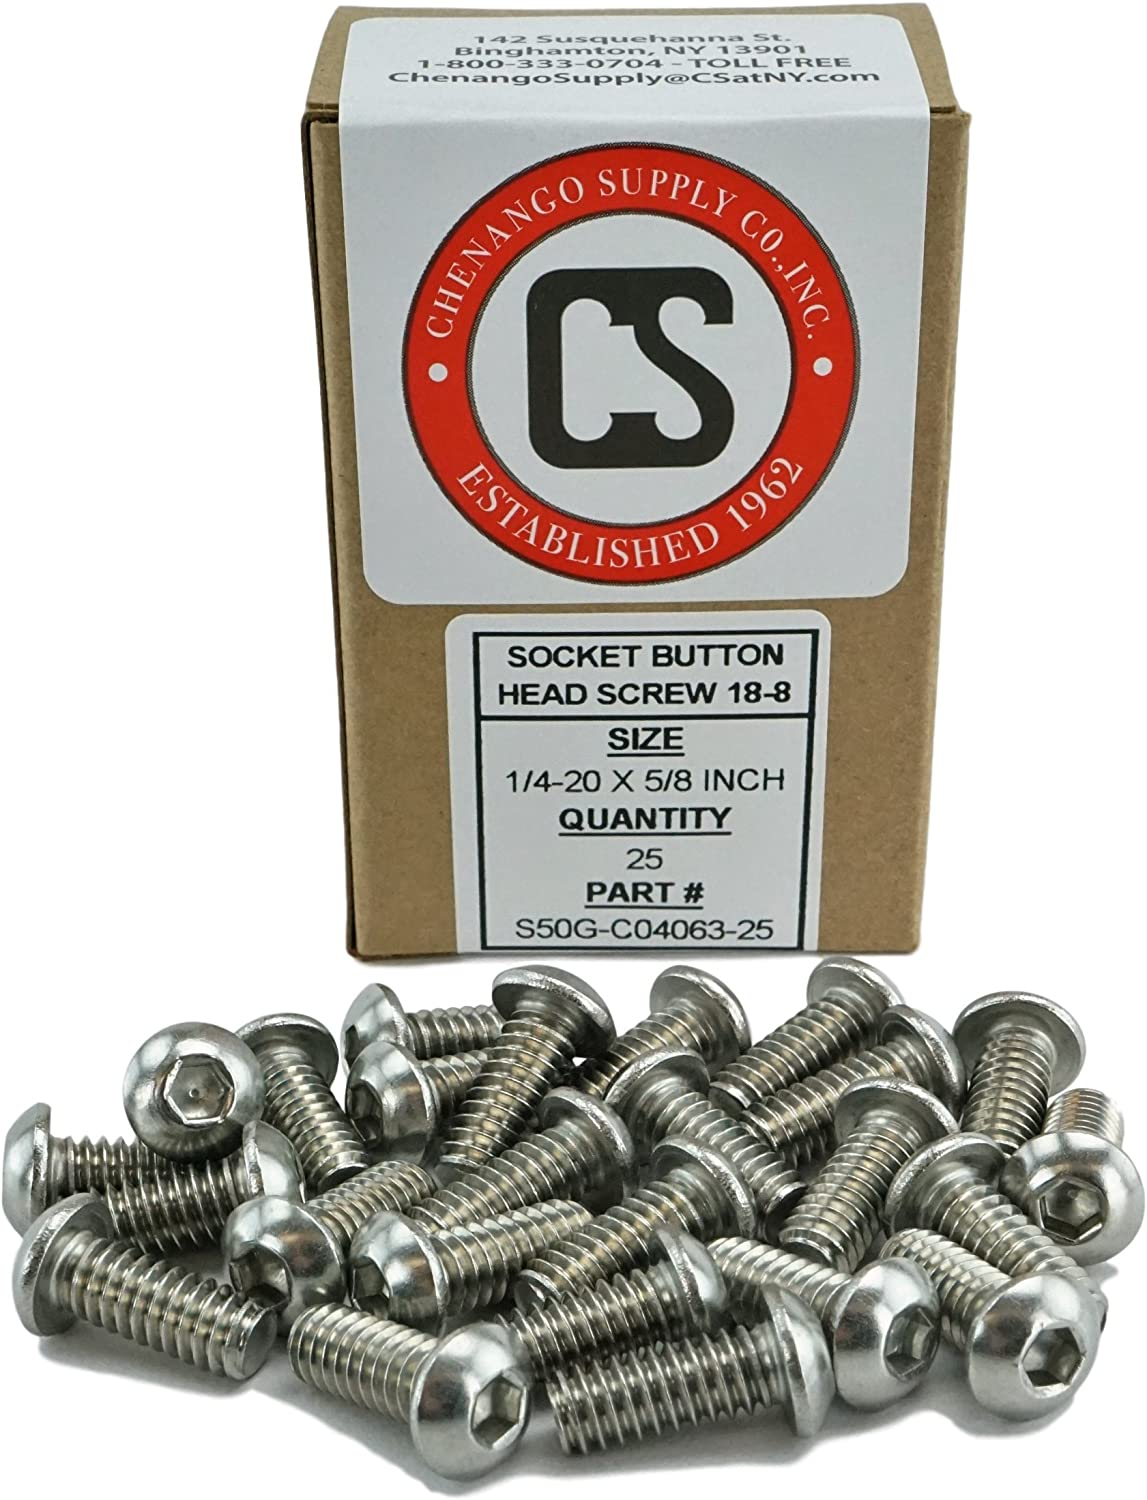 Socket Button Head Cap Screws Full Thread 1//2 to 3 Available Stainless Steel 18-8 Stainless 1//4-20 x 1 Coarse Thread Hex Drive 1//4-20 x 1